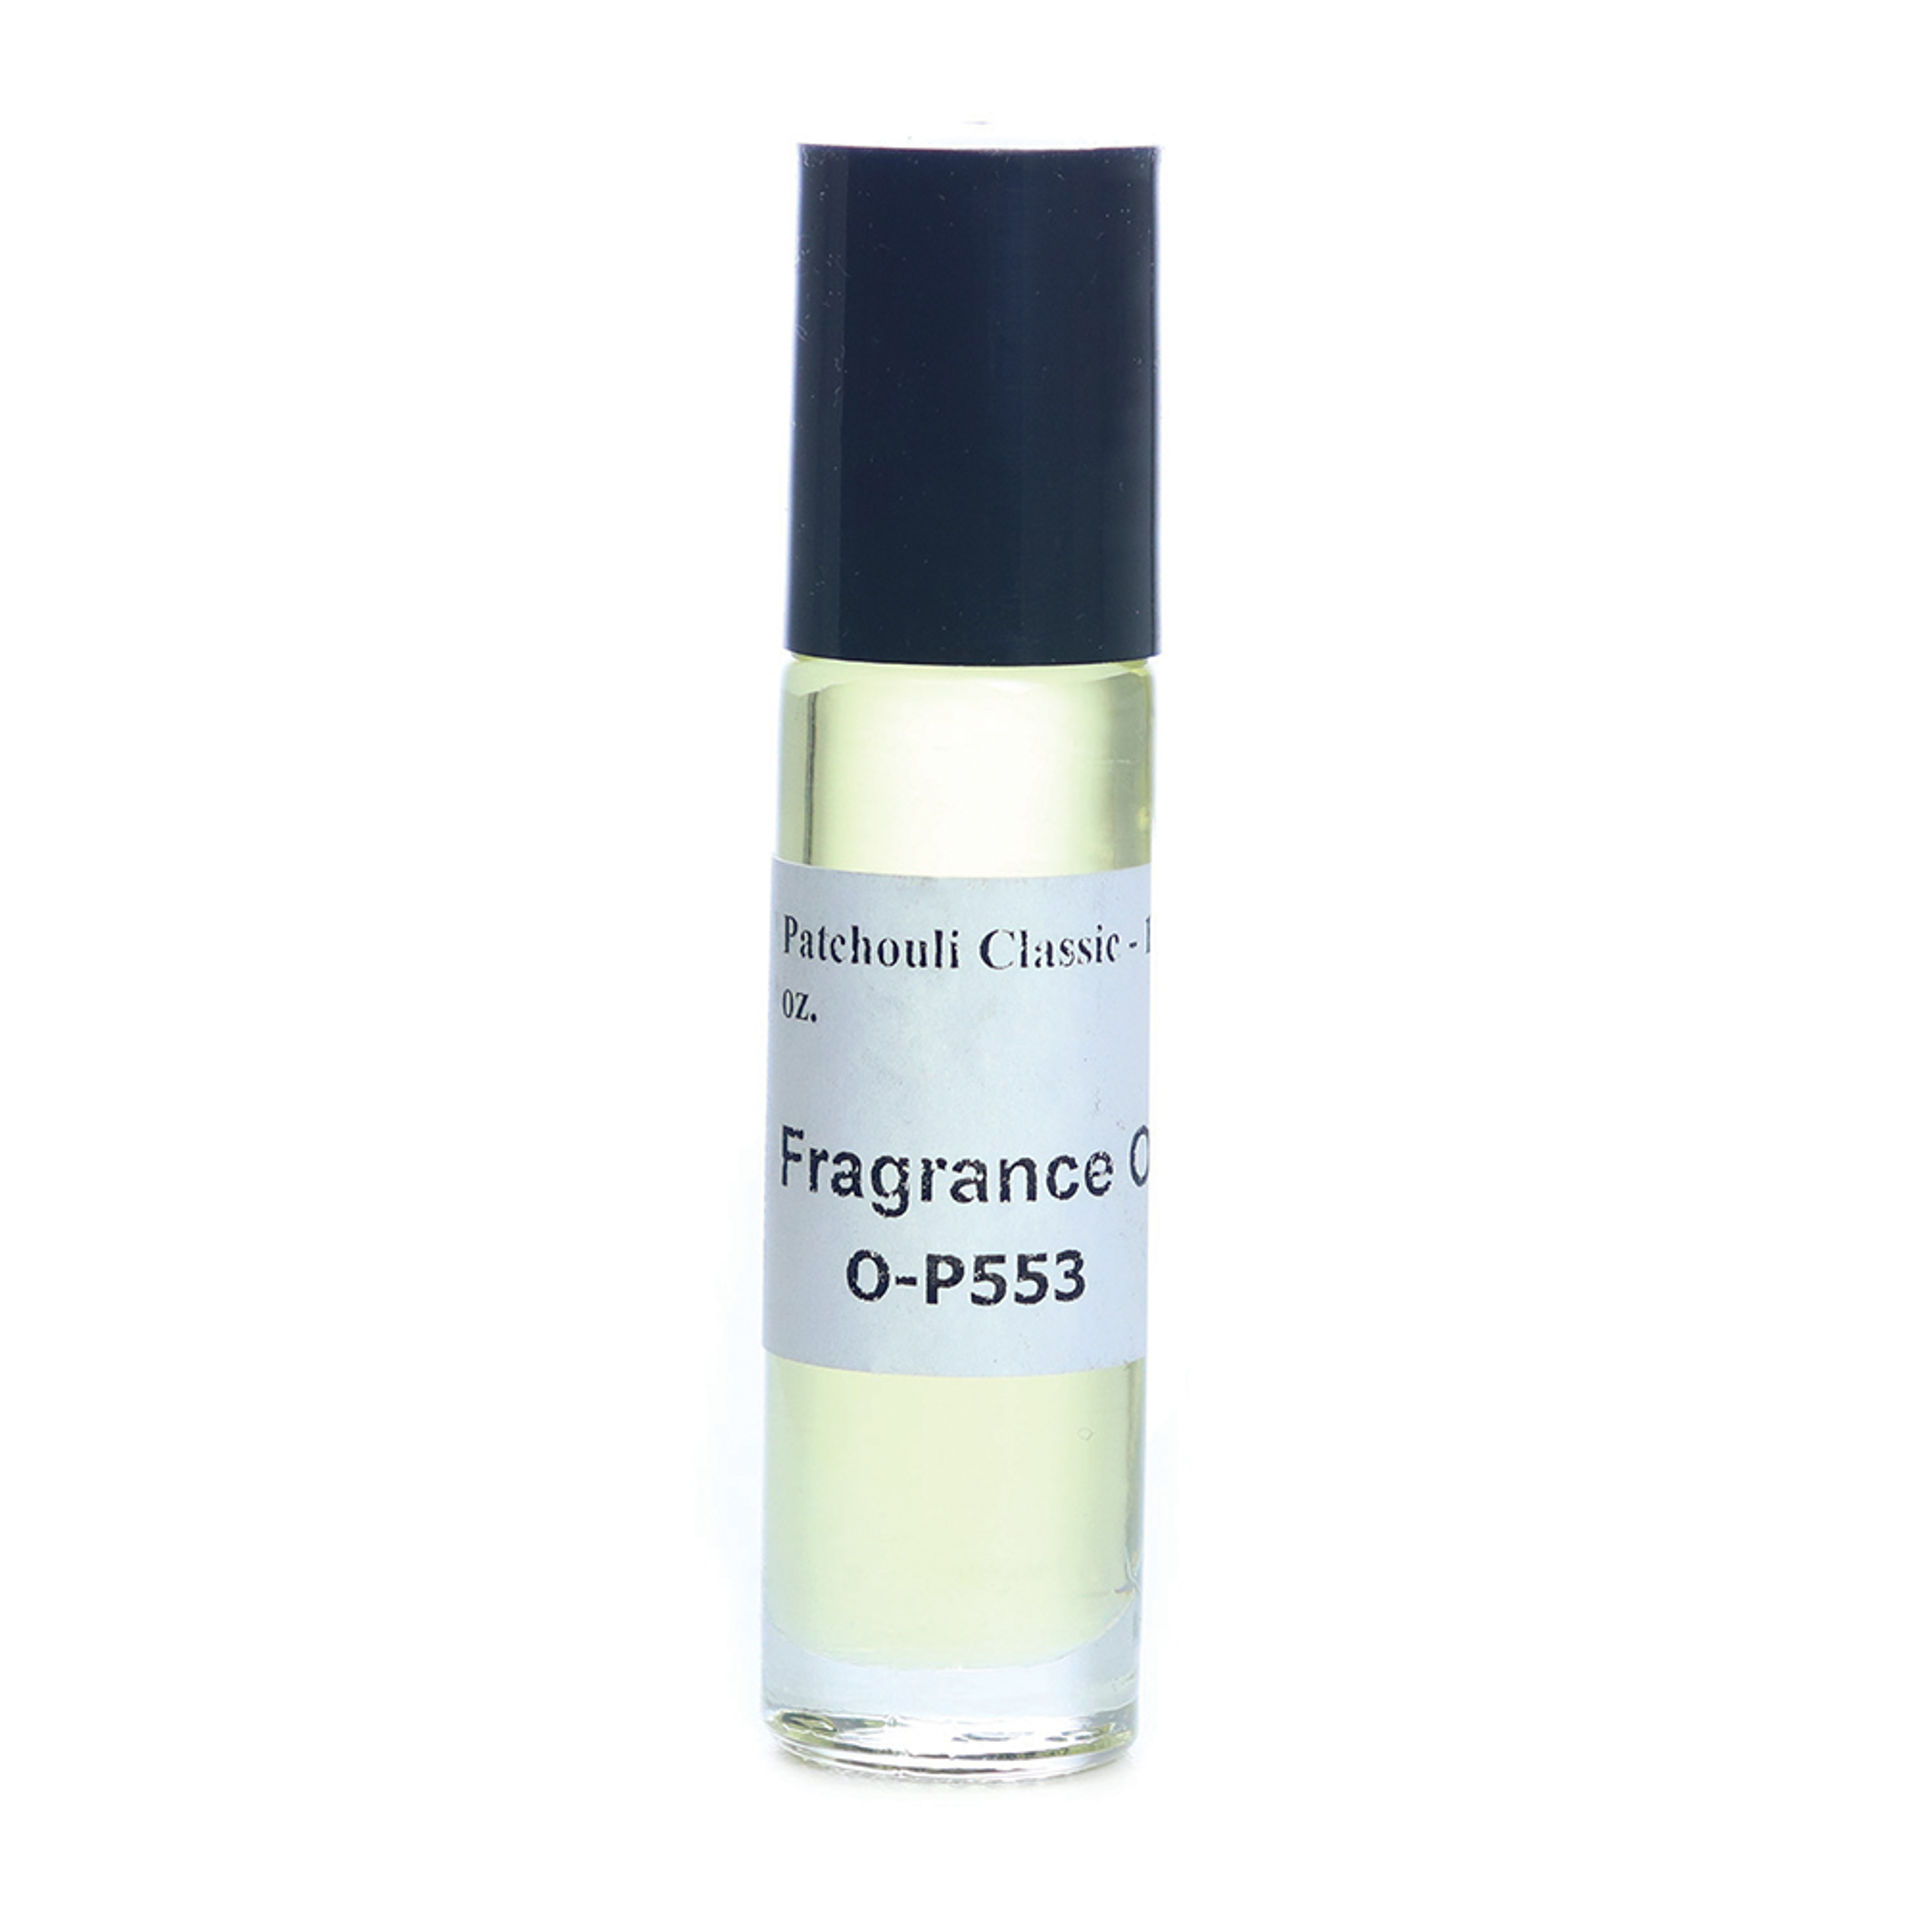 Picture of Patchouli Classic - 1/3 oz.